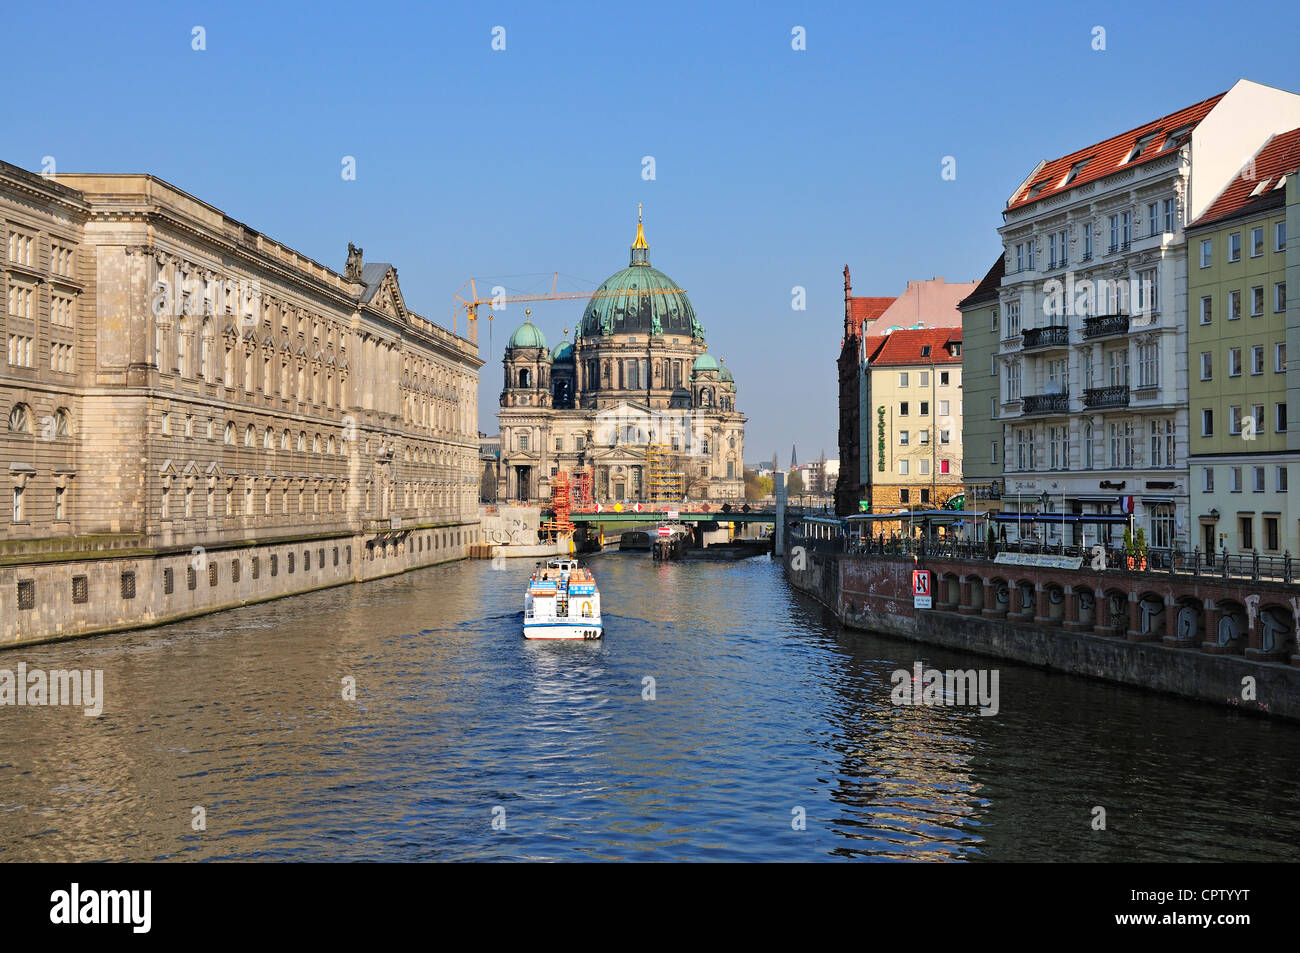 Berlin, Germany. Berliner Dom / Berlin Cathedral (1905, but largely rebuilt after sever damage in WW2) seen from - Stock Image